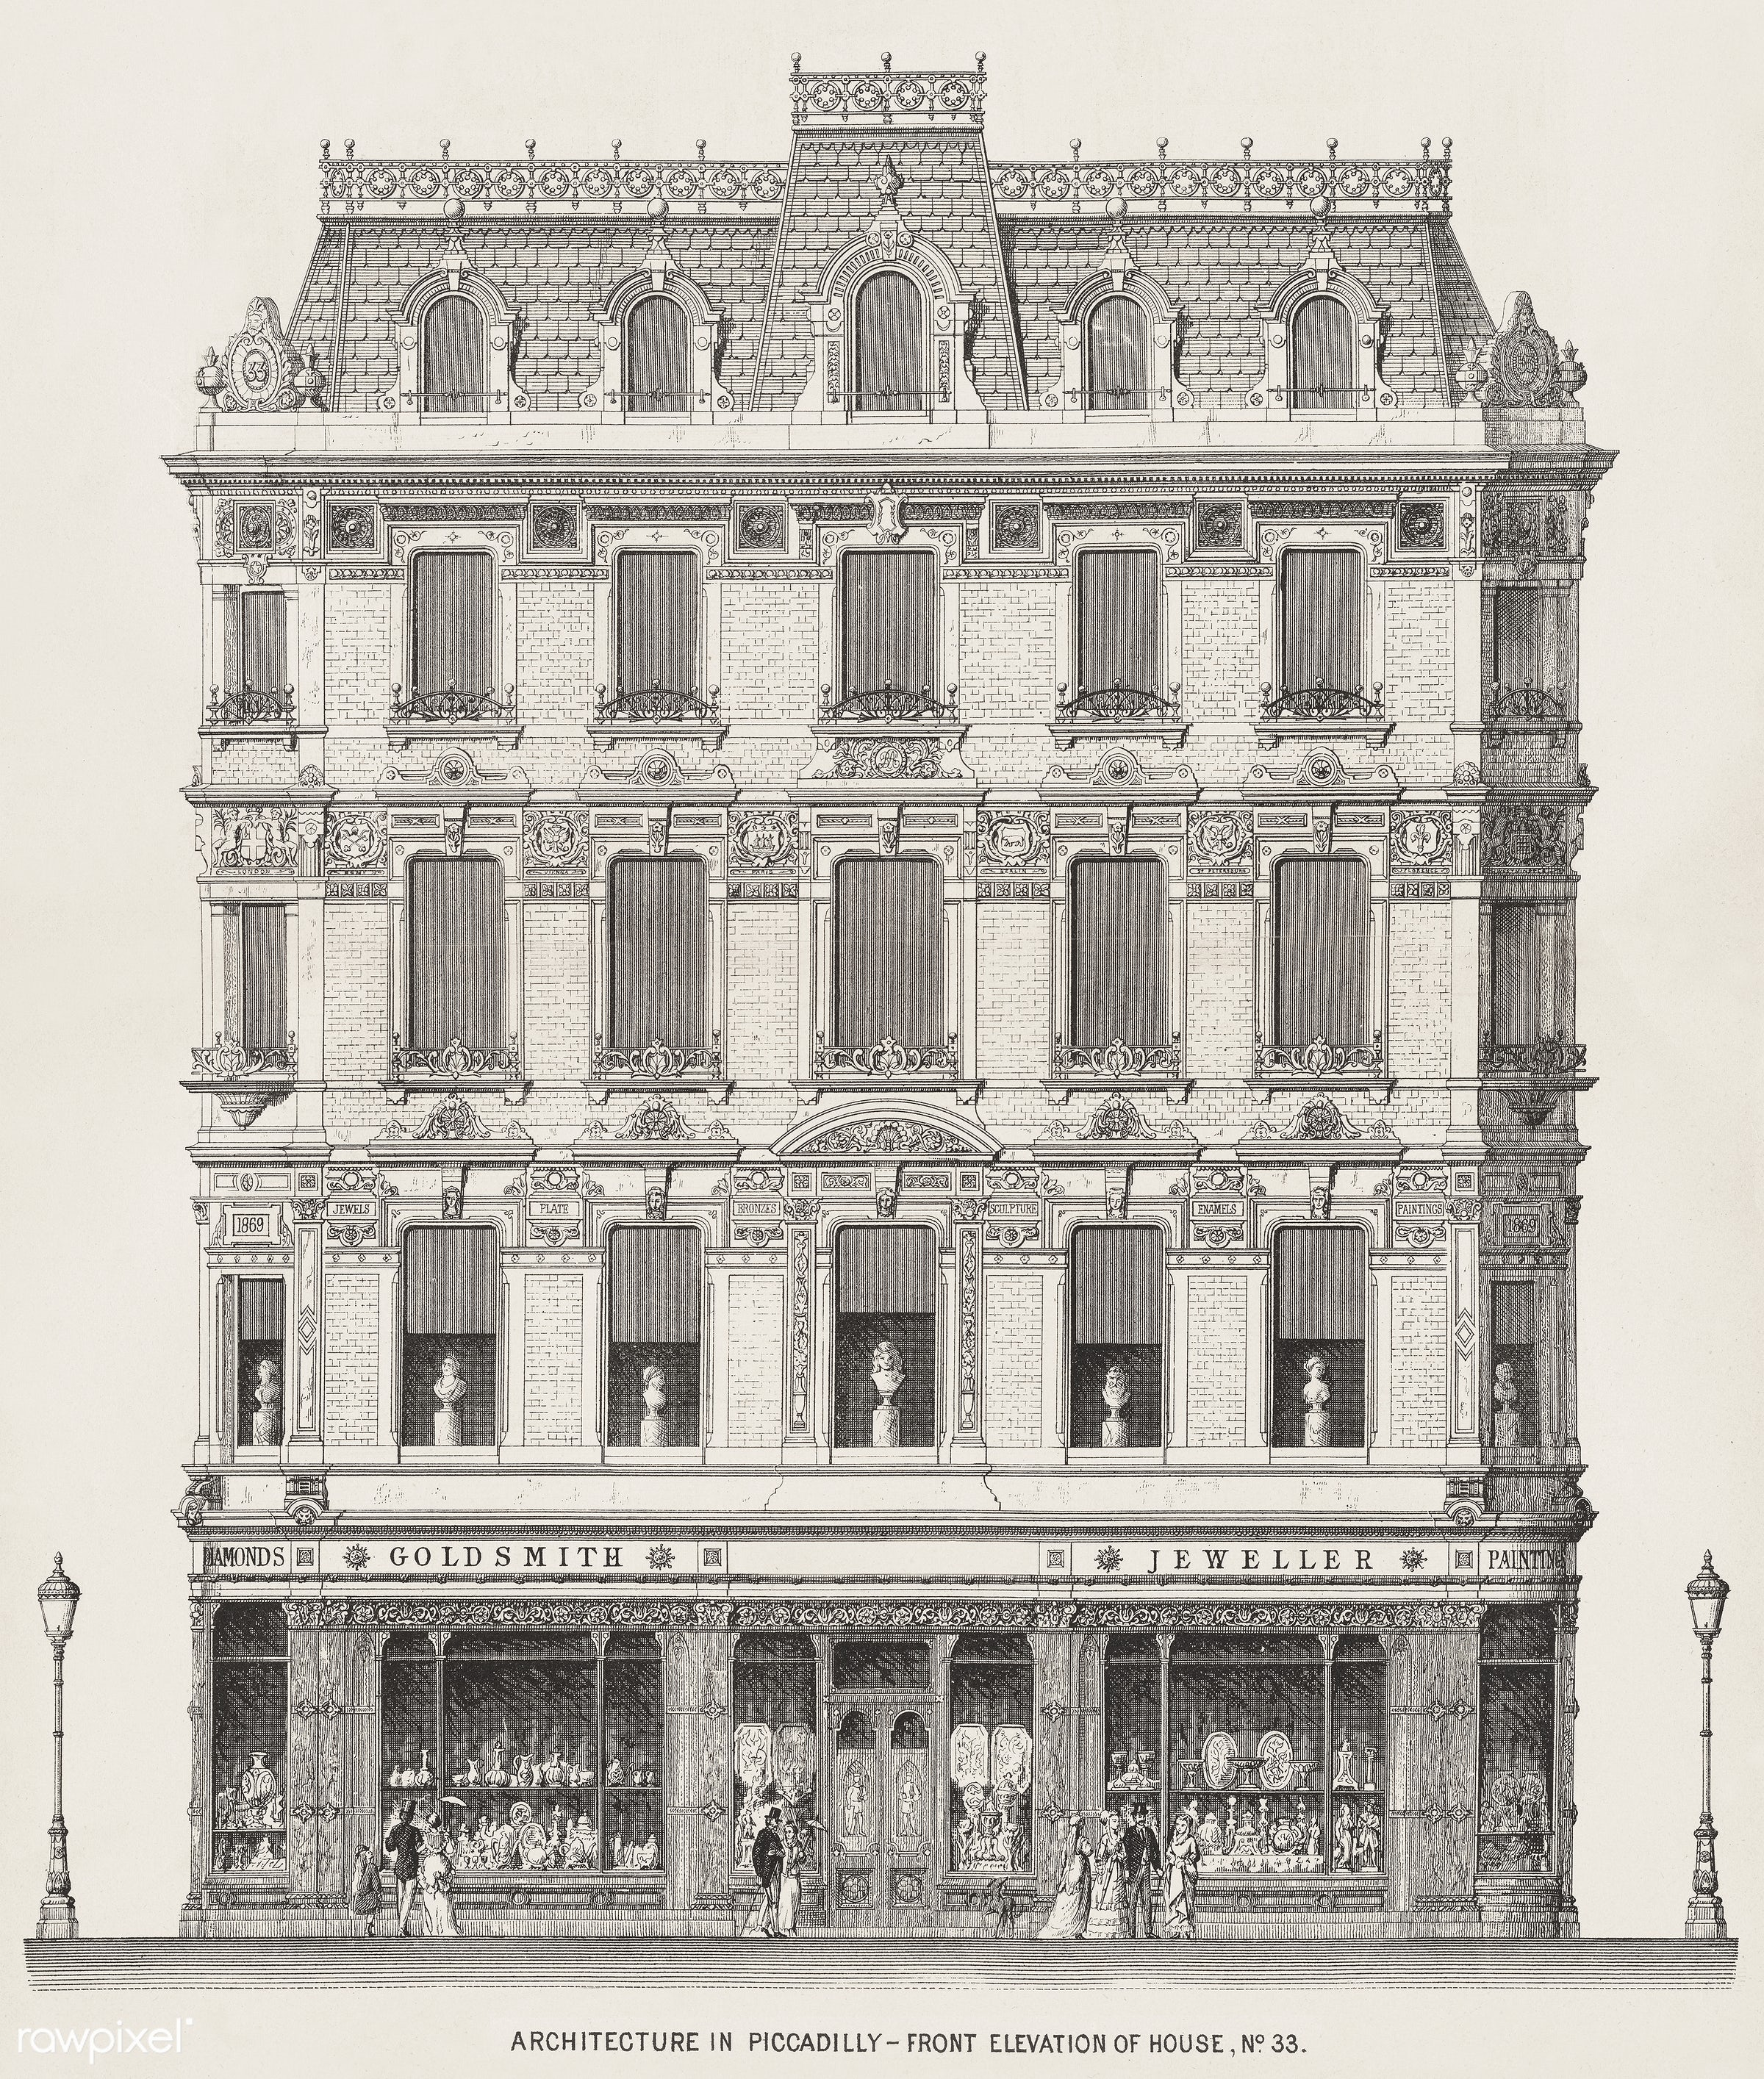 Vintage illustration of Architecture in Piccadilly published in 1870 by Arthur Cates (1829-1901). - antique, architect,...